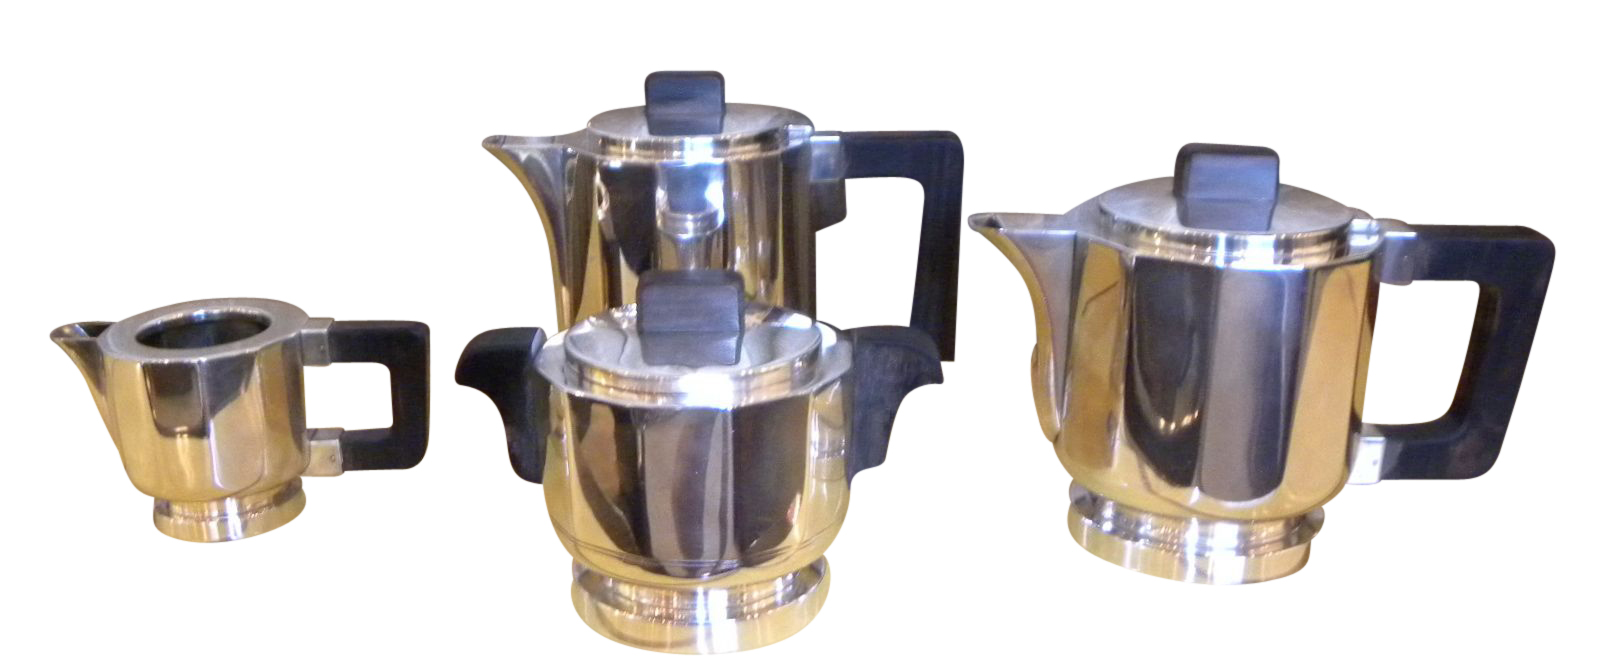 Stunning French Art Deco Fluted 4 Piece Coffee/Tea Service